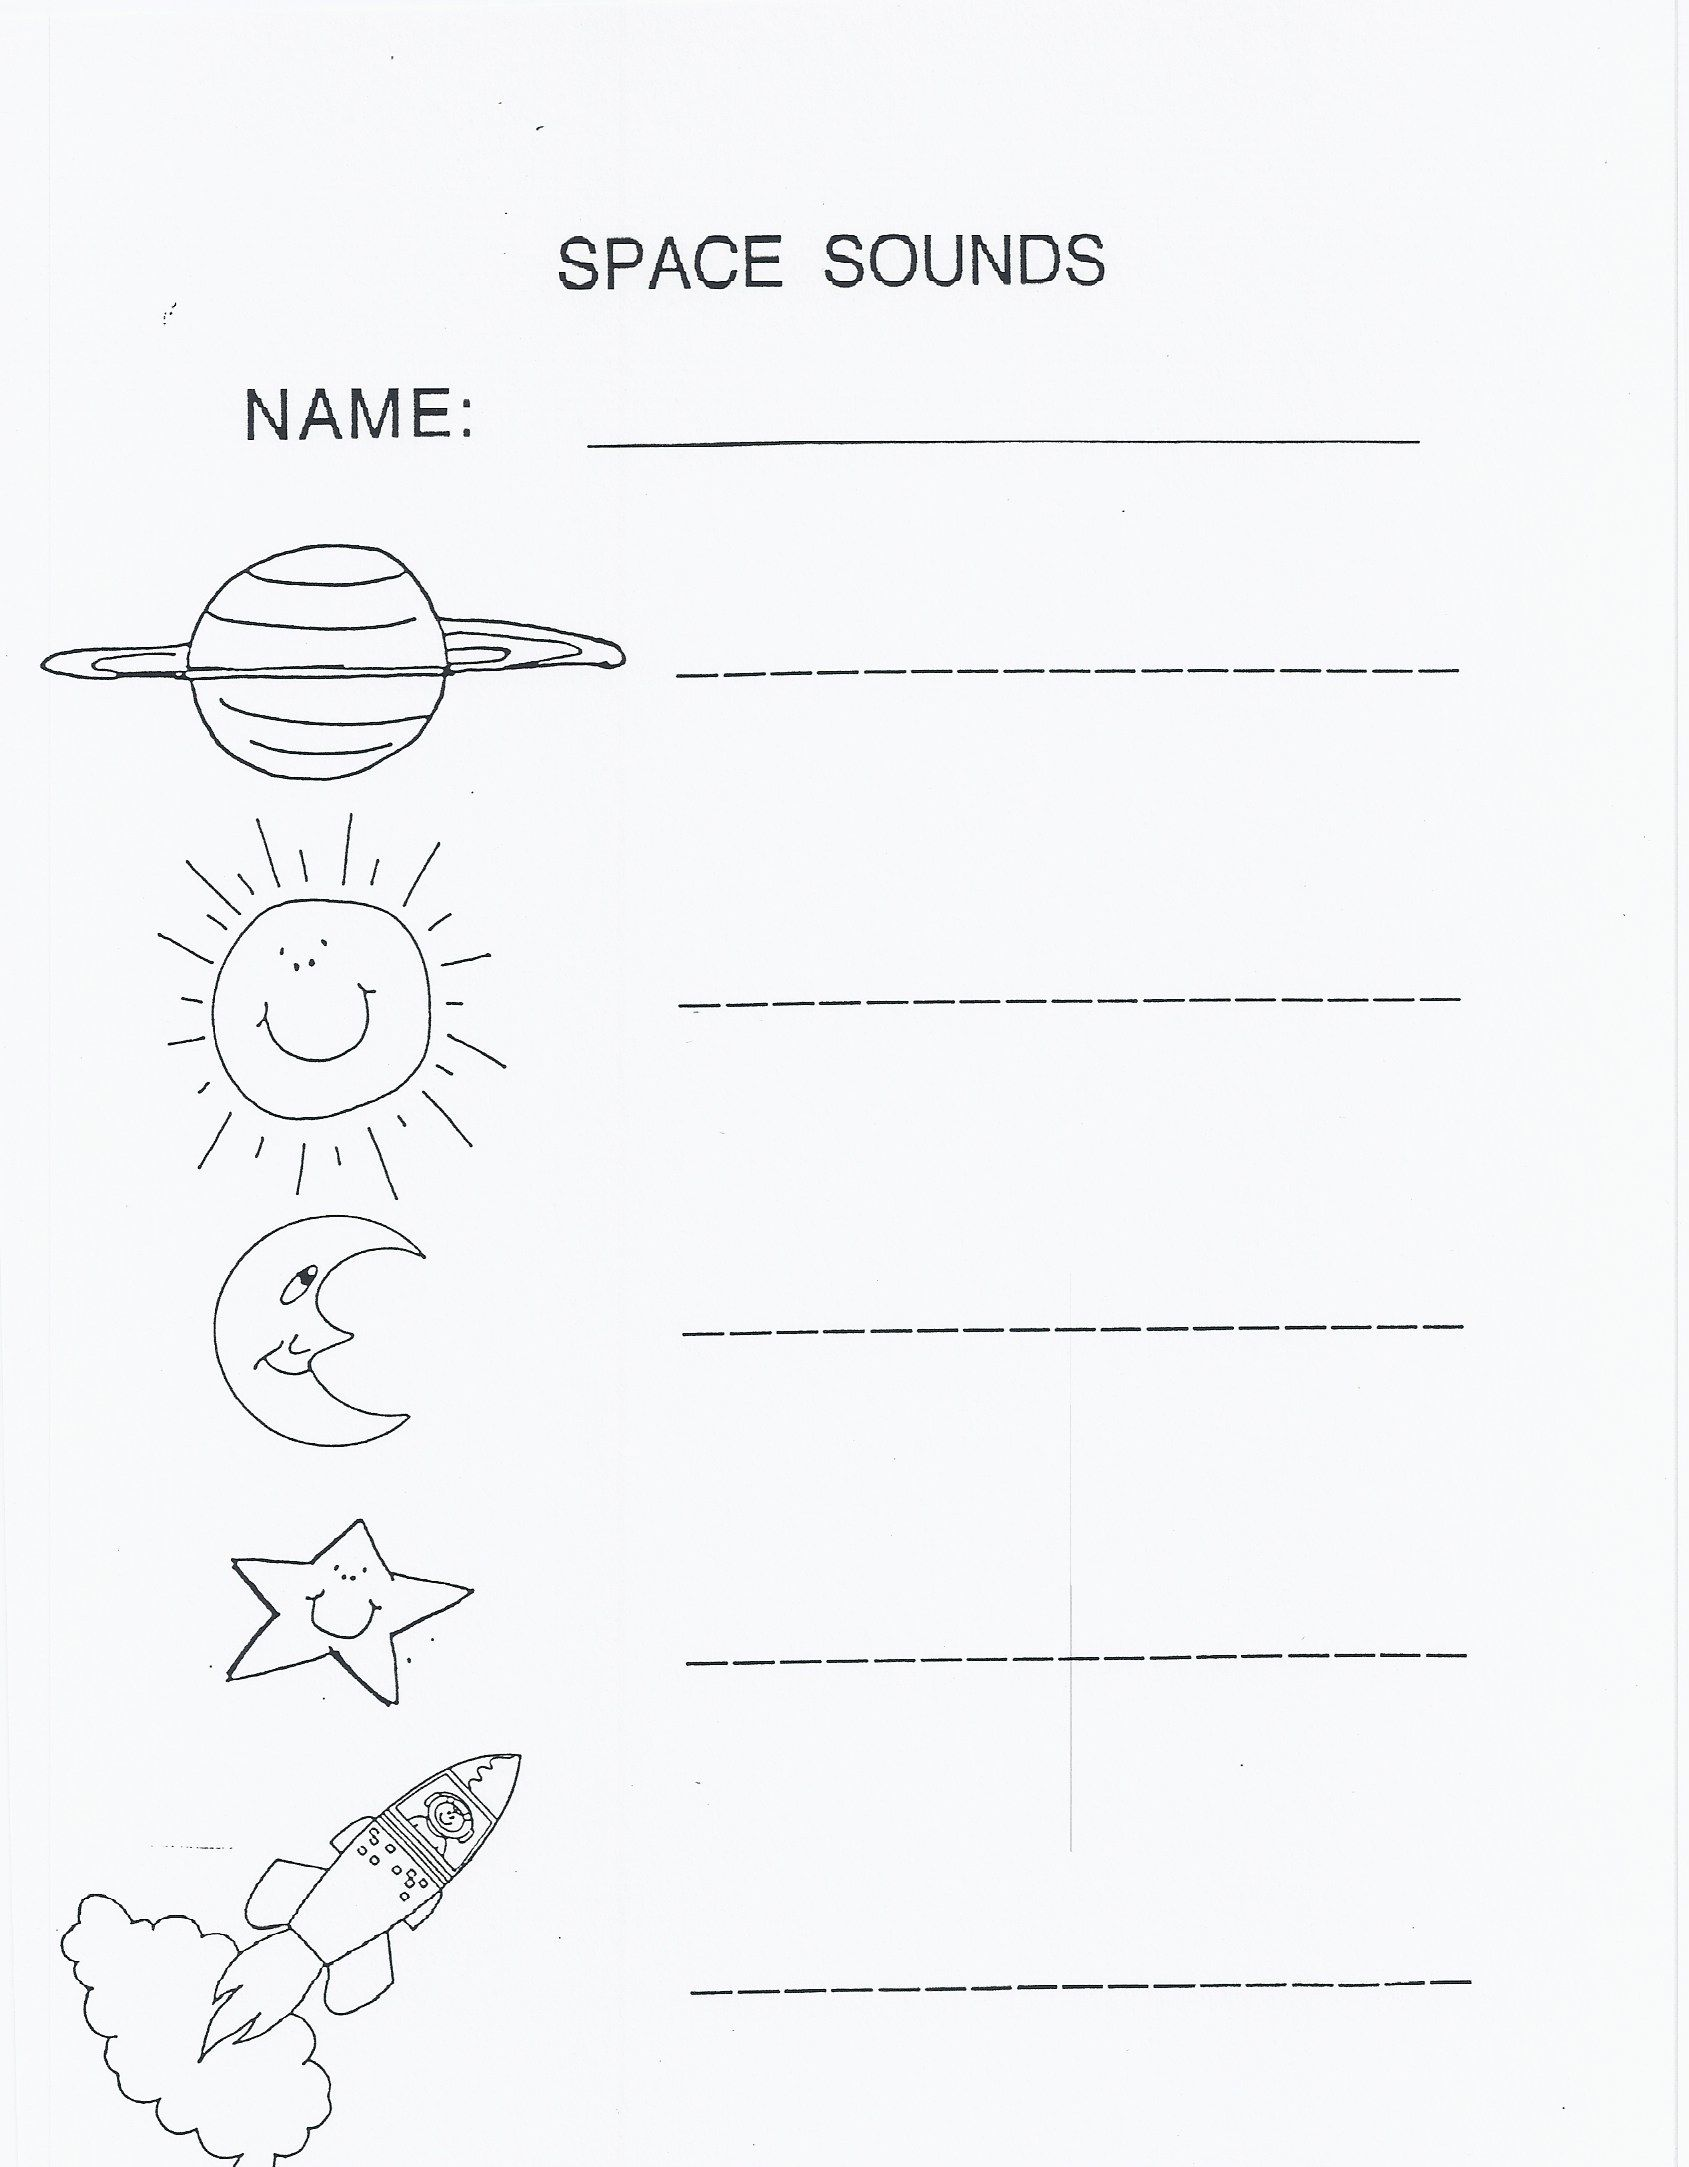 Pin by Gen on Space Camp | Pinterest | Worksheets, Space theme and ...